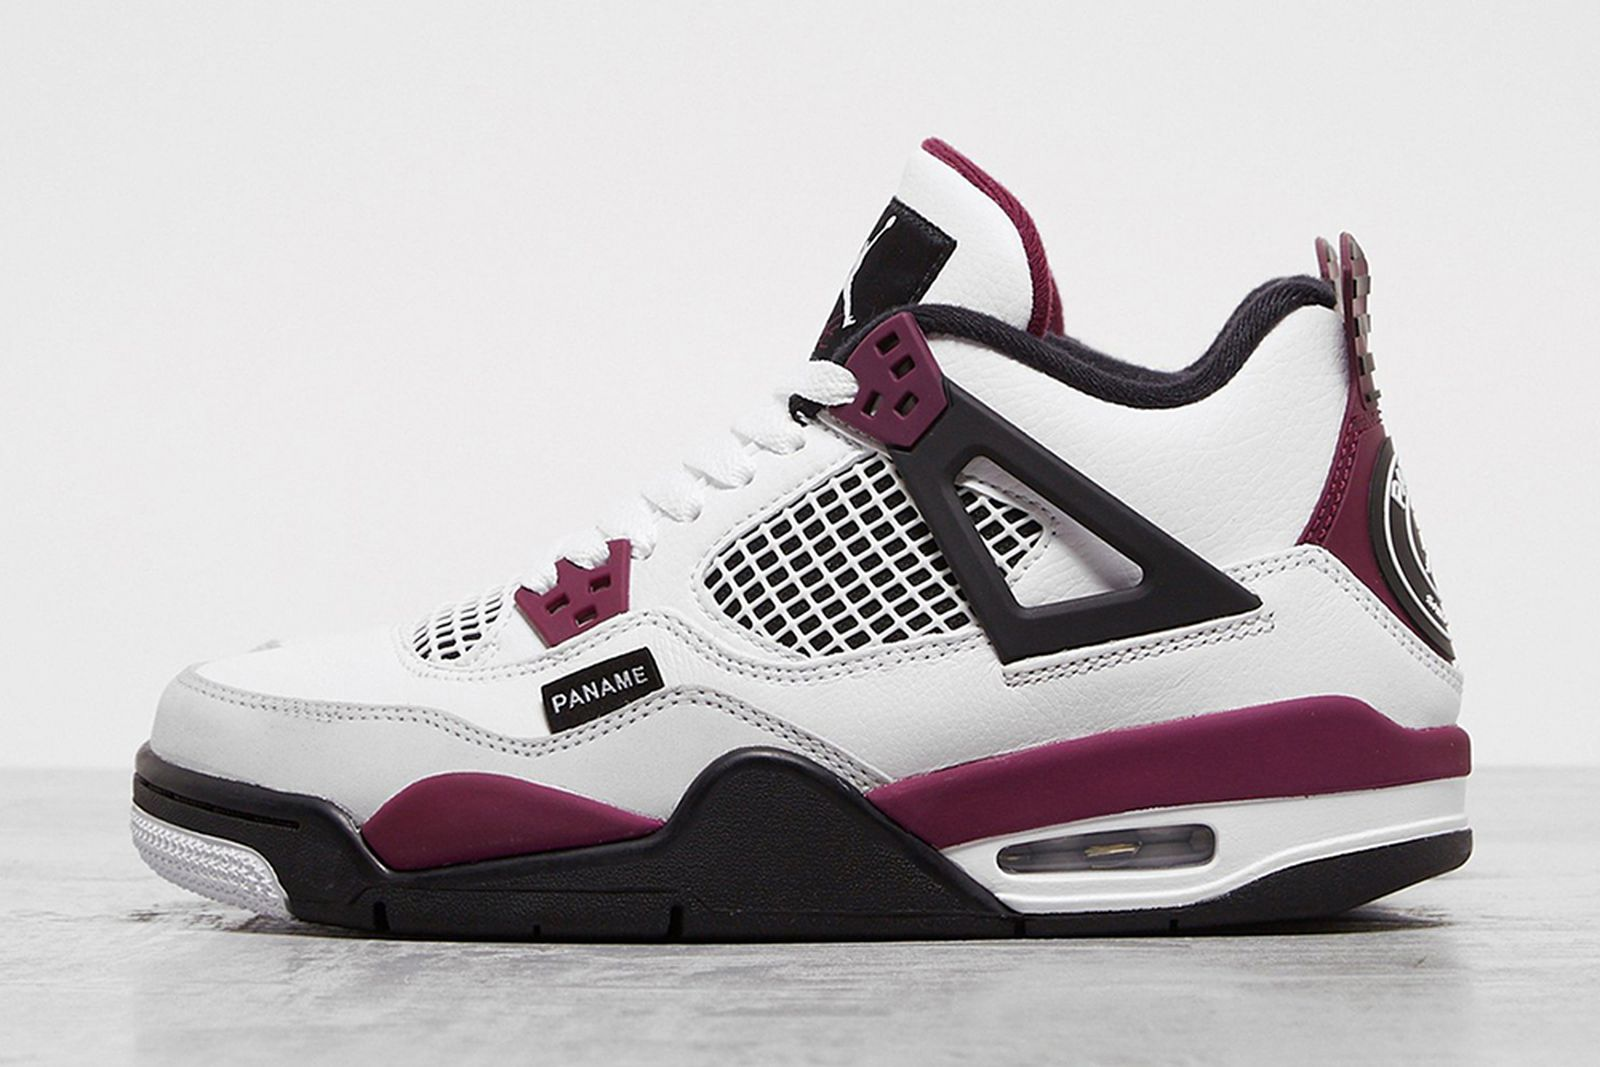 nombre Templado inoxidable  Paris Saint-Germain x Air Jordan 4: First Look & Info